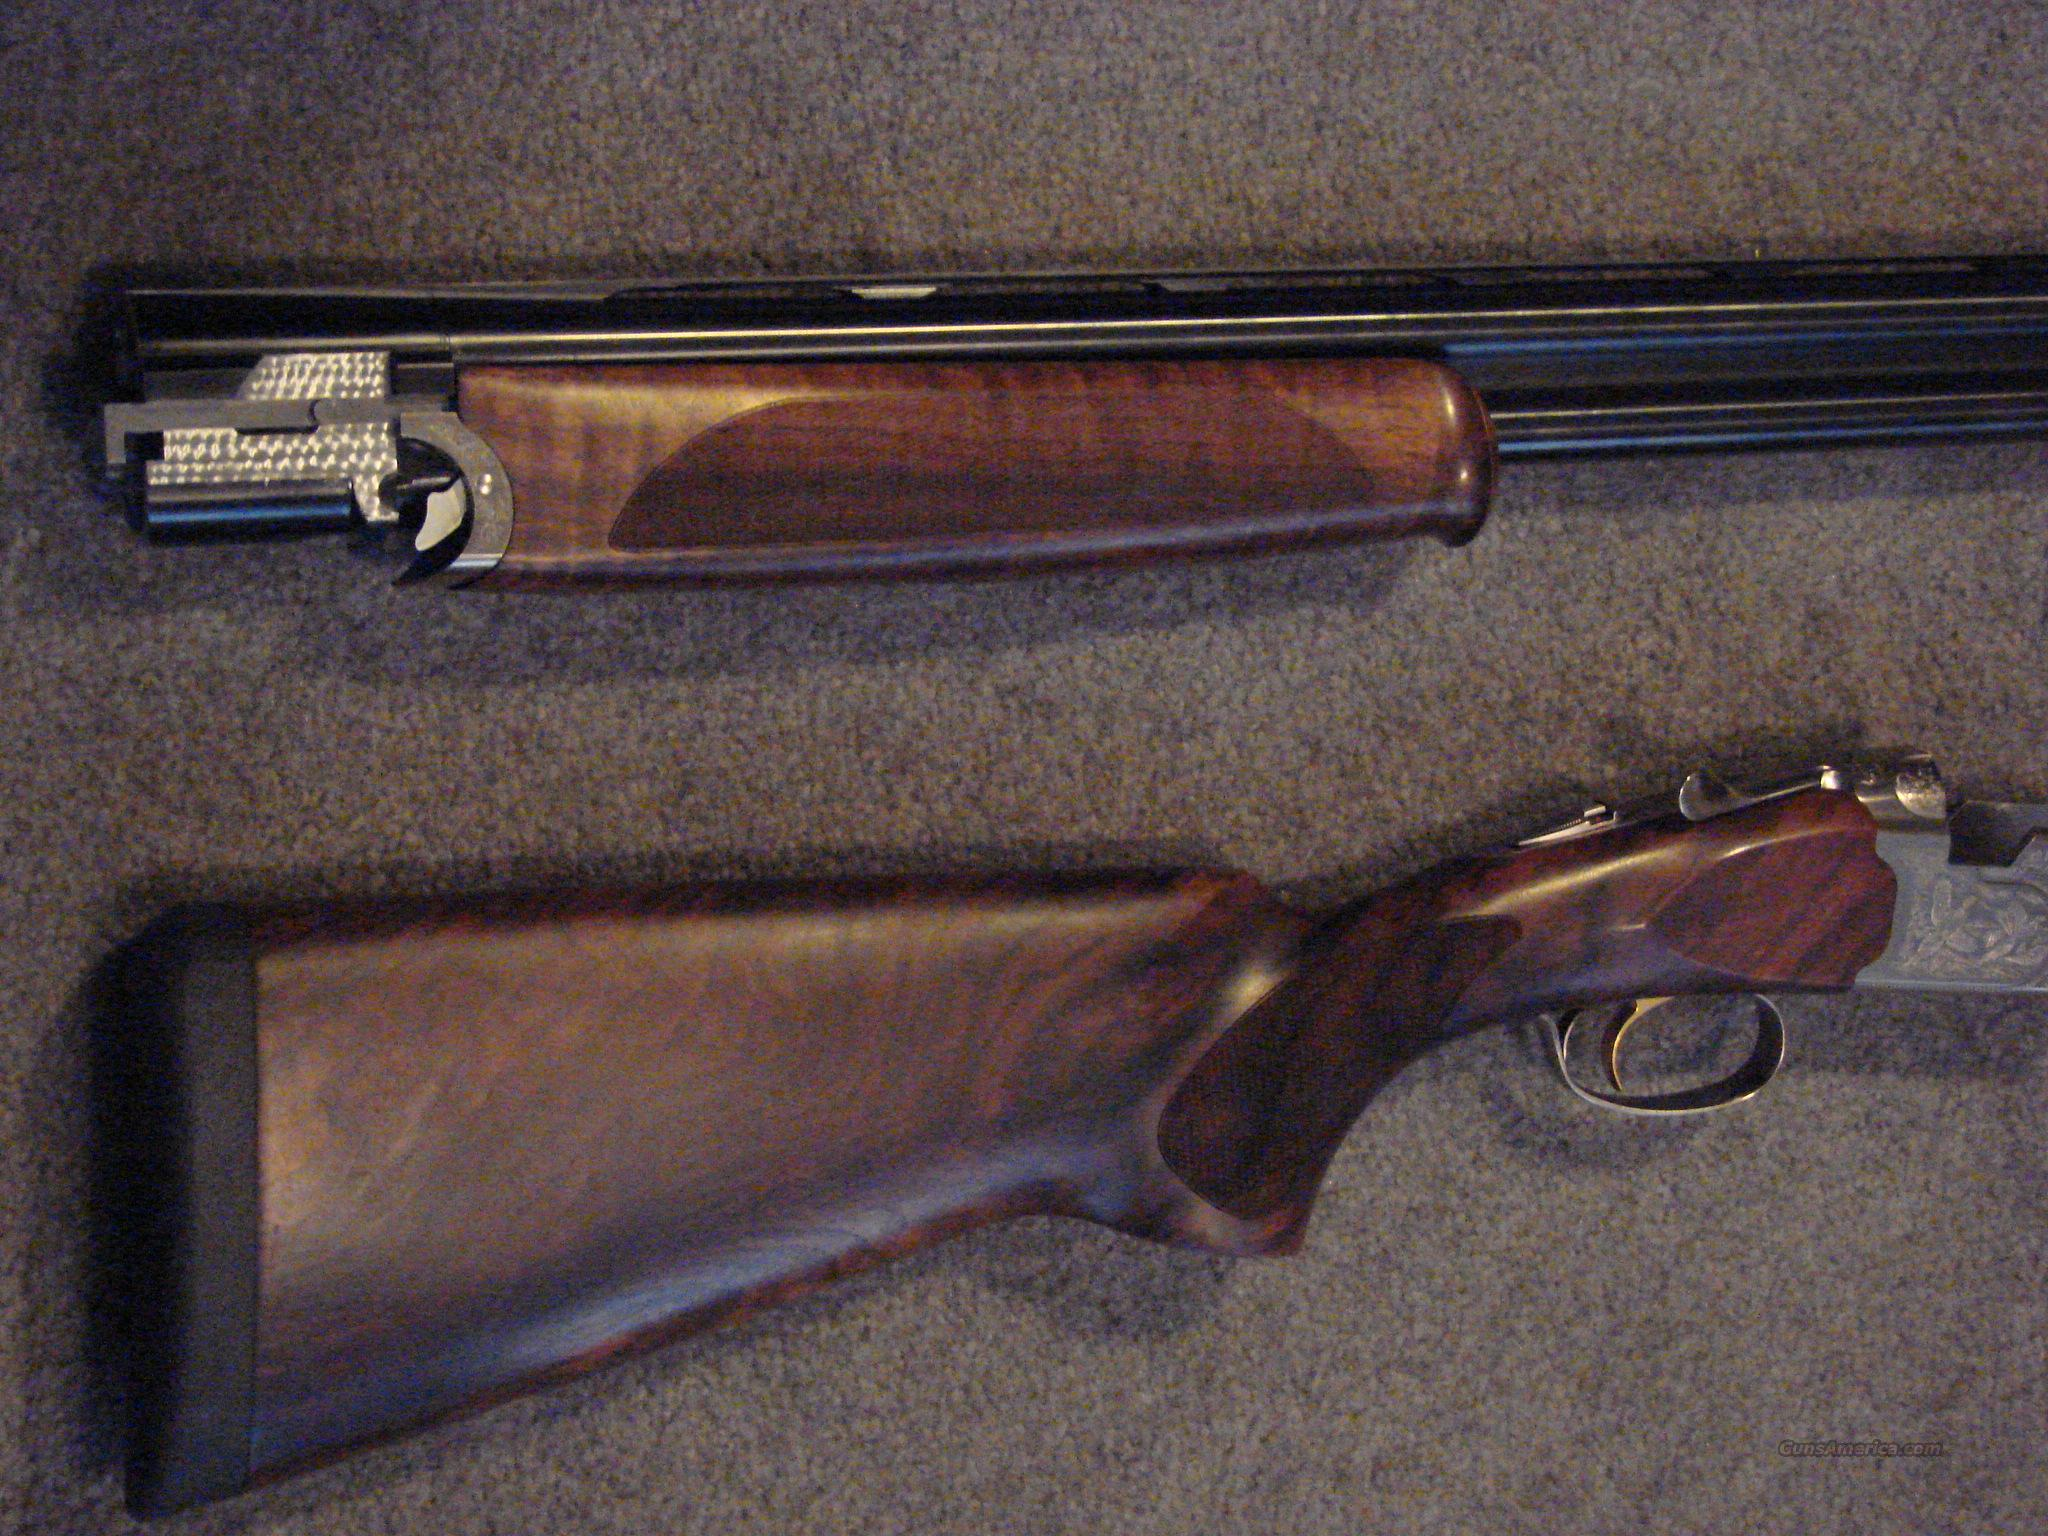 Beretta SP III Clays gun  Guns > Shotguns > Beretta Shotguns > O/U > Trap/Skeet